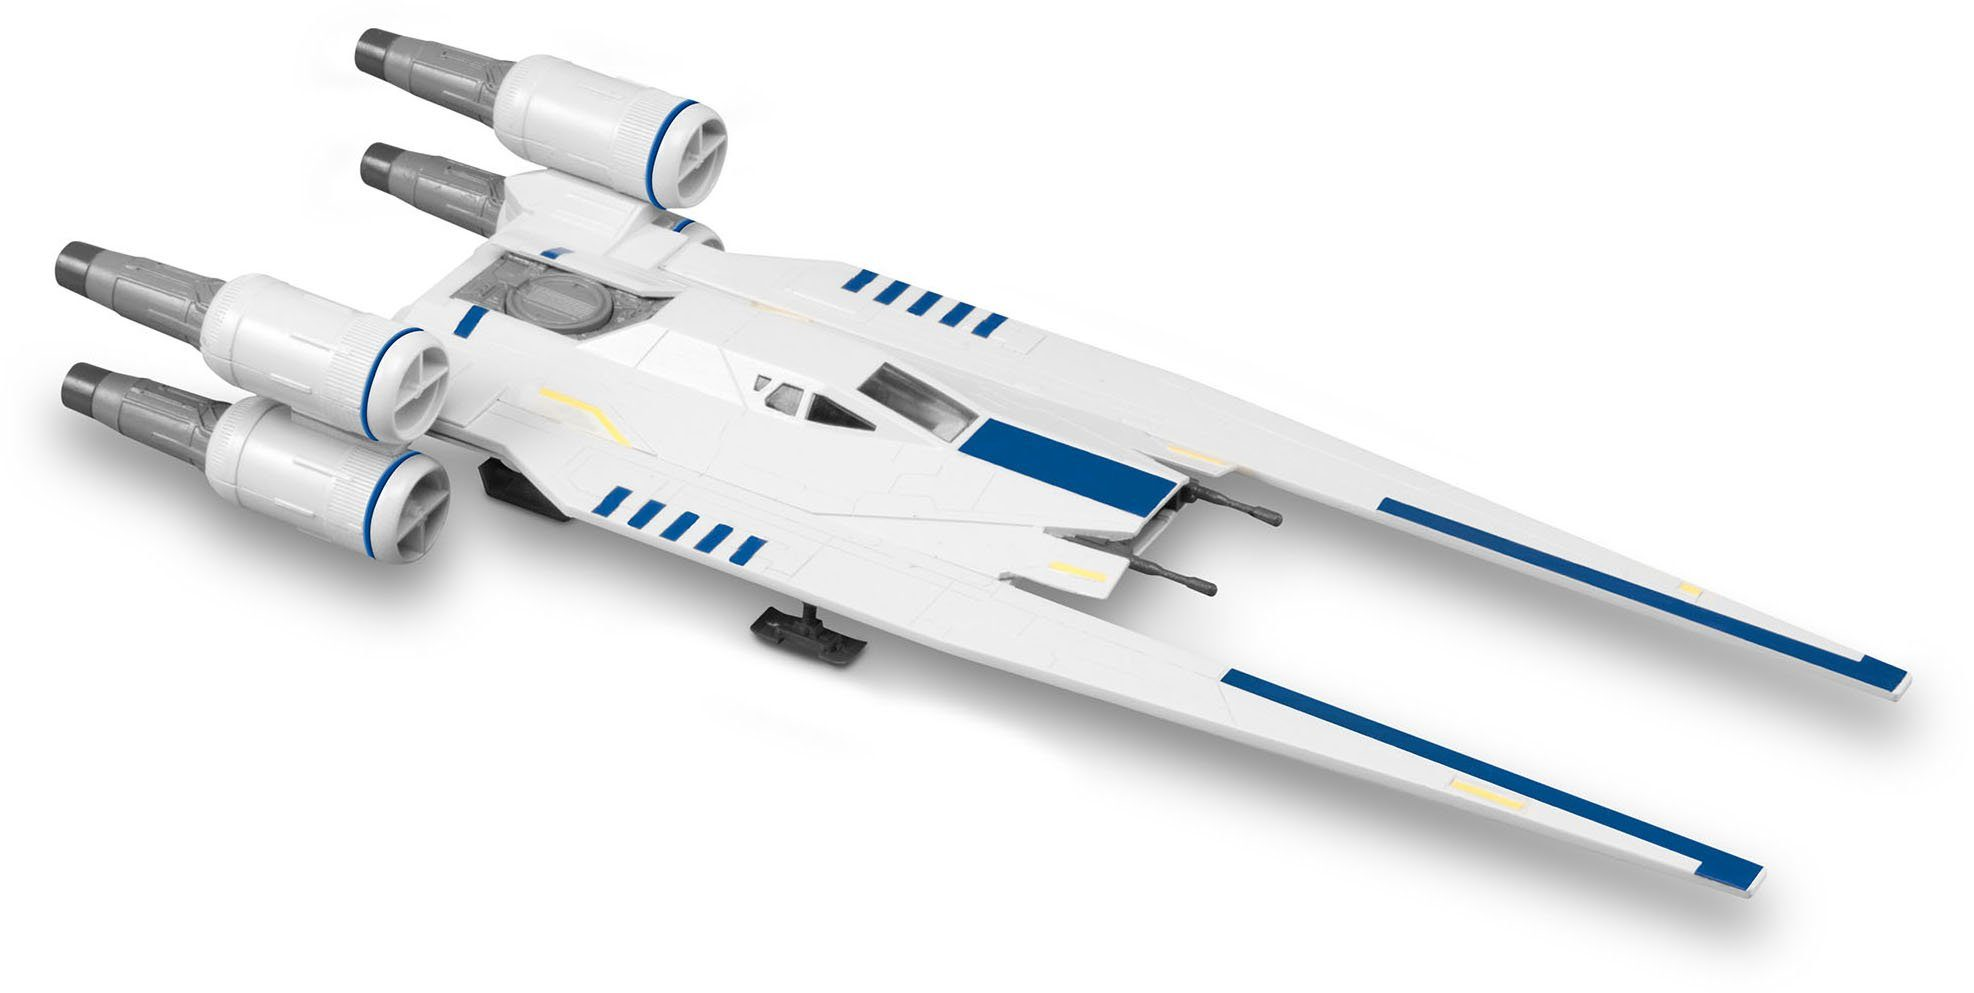 Revell Modellbausatz mit Licht/Soundeffekten, »Build & Play, Disney Star Wars, Rebel U-Wing Fighter«